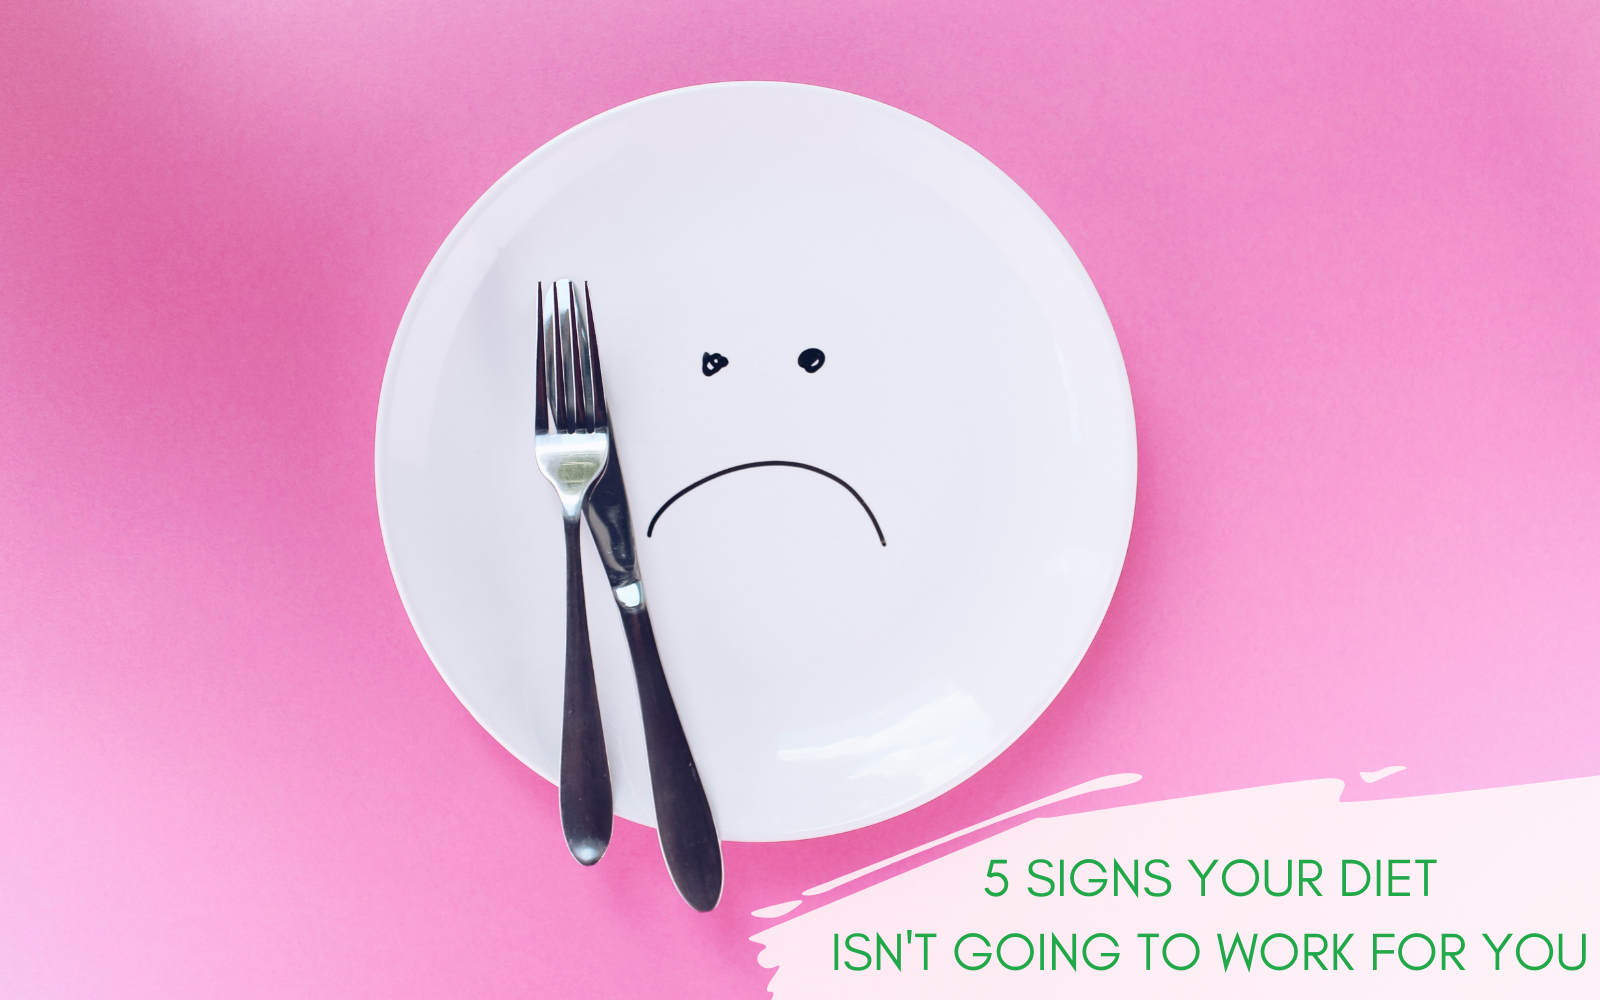 Weight Loss: 5 Signs Your Diet Isn't Going to Work For You